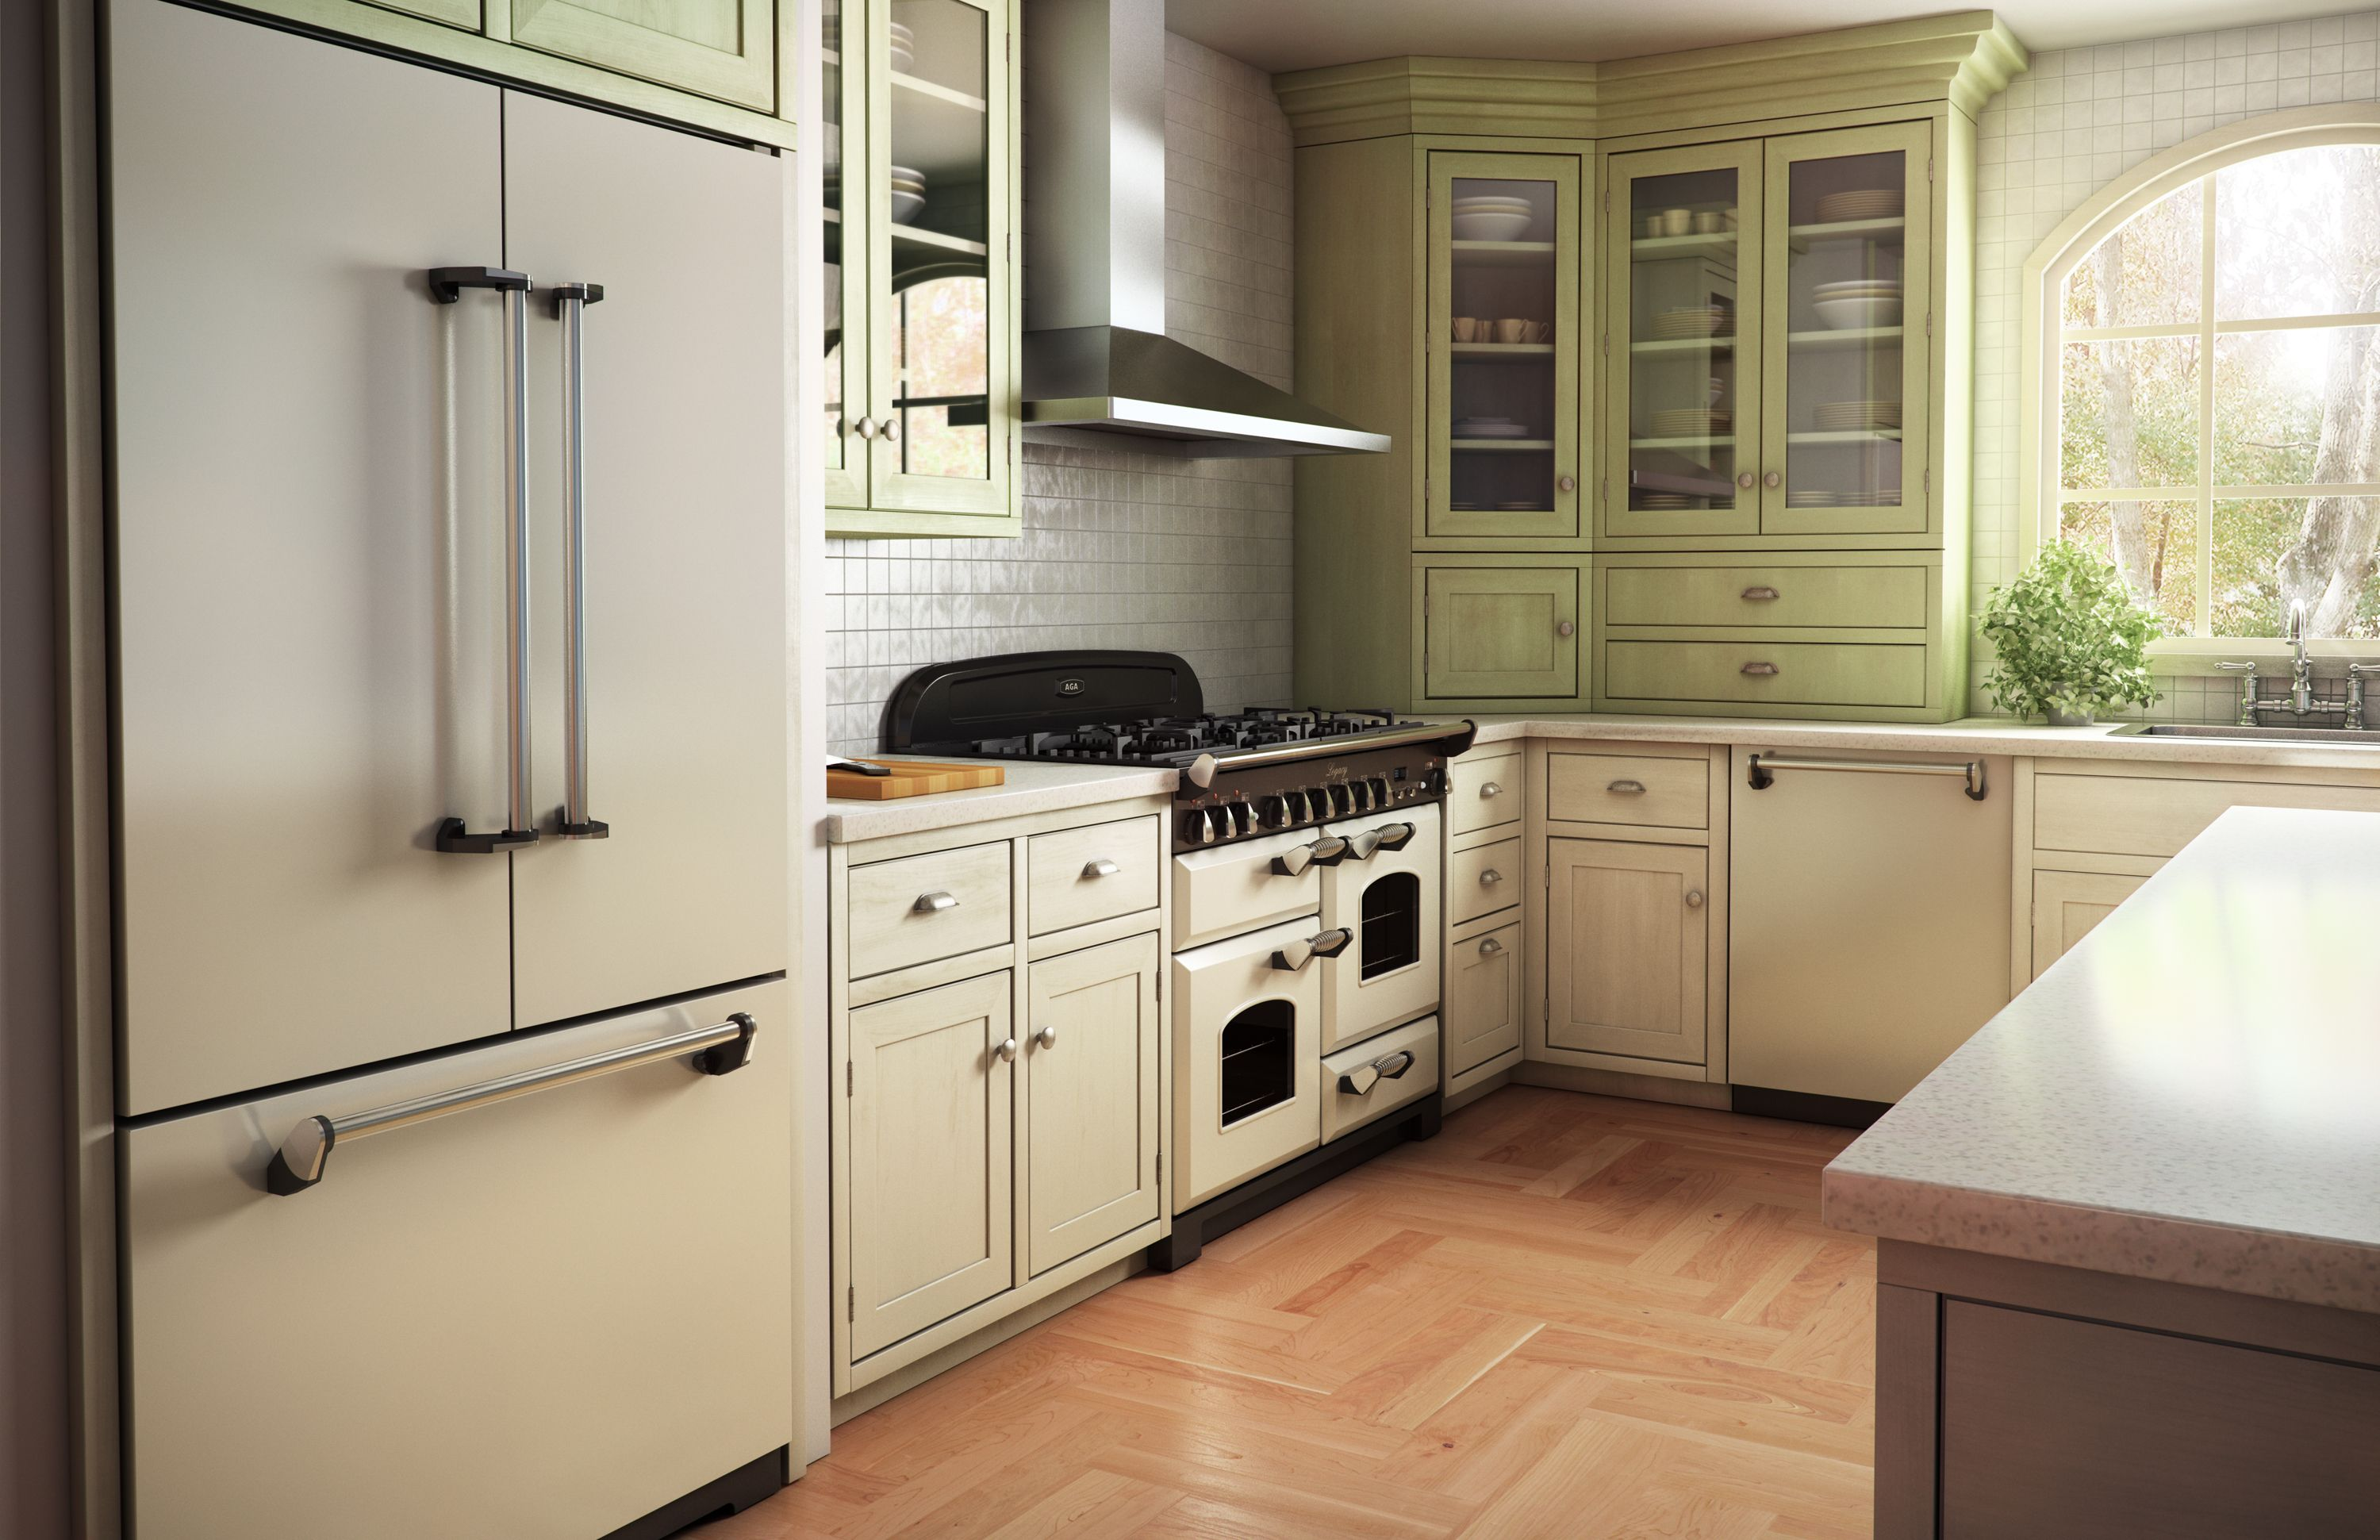 aga legacy with cathedral doors kitchen appliances design retro kitchen appliances diy on kitchen appliances id=42792